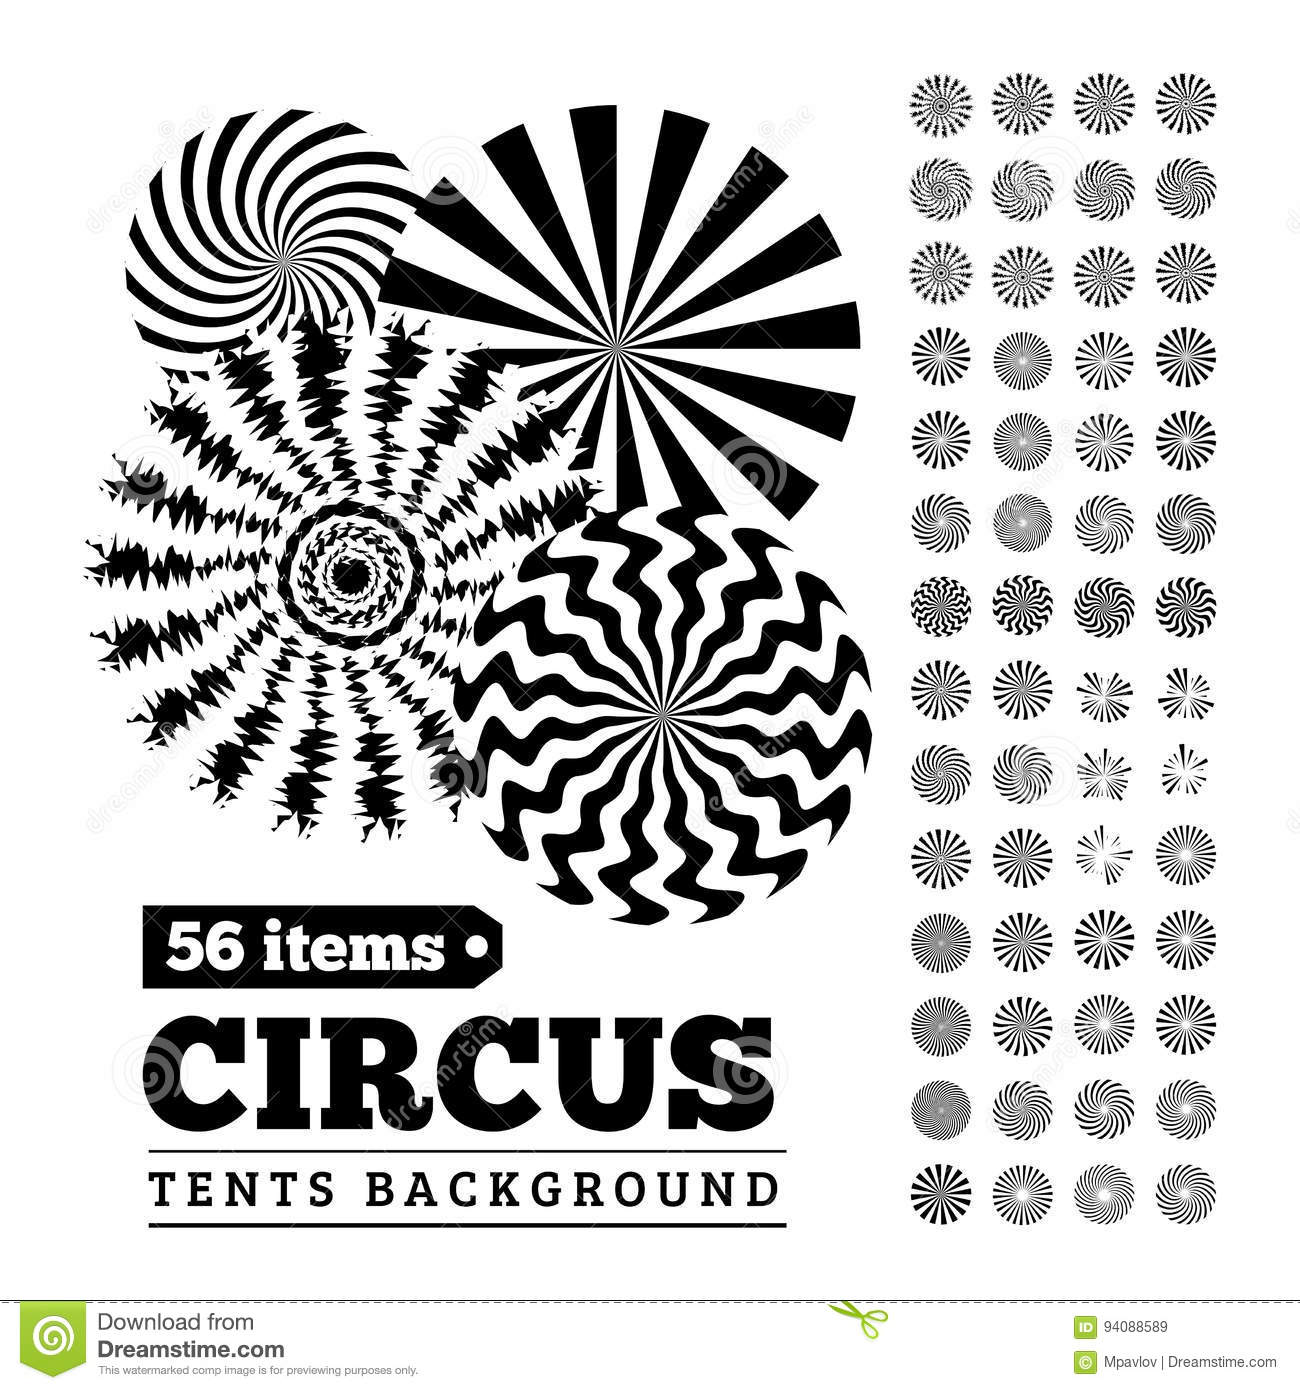 Circus tents backgrounds or circular illustrations for your design  sc 1 st  Dreamstime.com & Circus Tents Backgrounds Or Circular Illustrations For Your Design ...